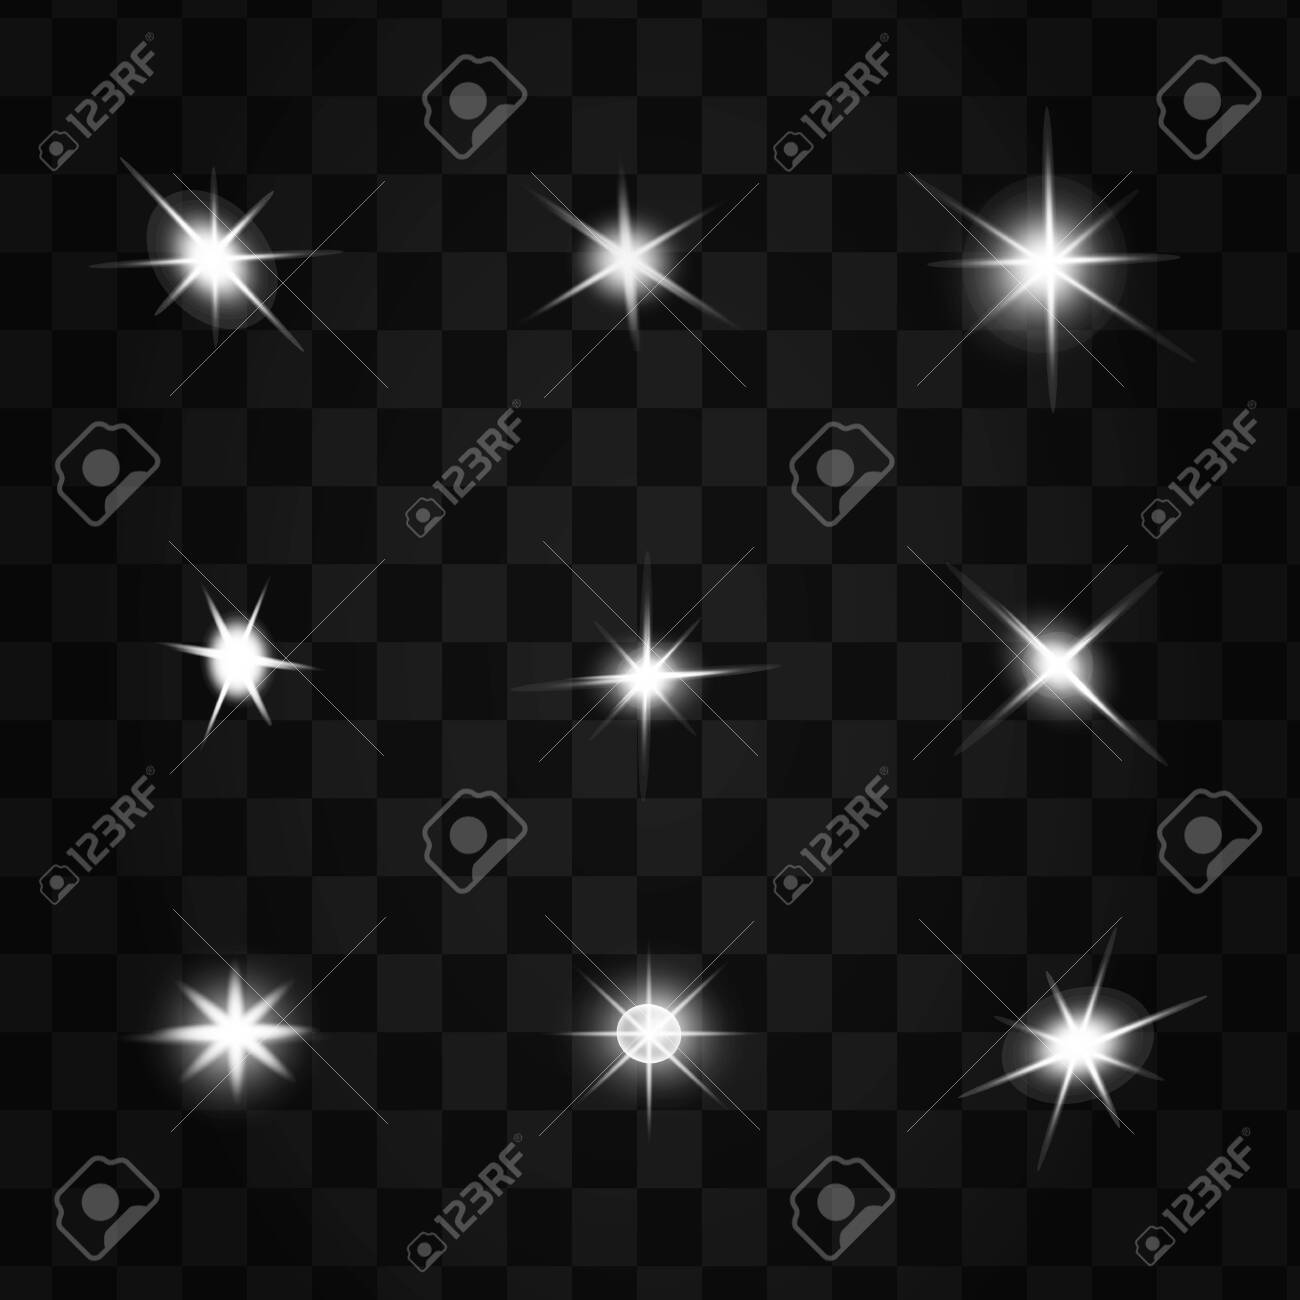 glowing lights effects isolated on black background. Sun flash with rays and spotlight. Glow light effect. Star burst with sparkles. - 146488435